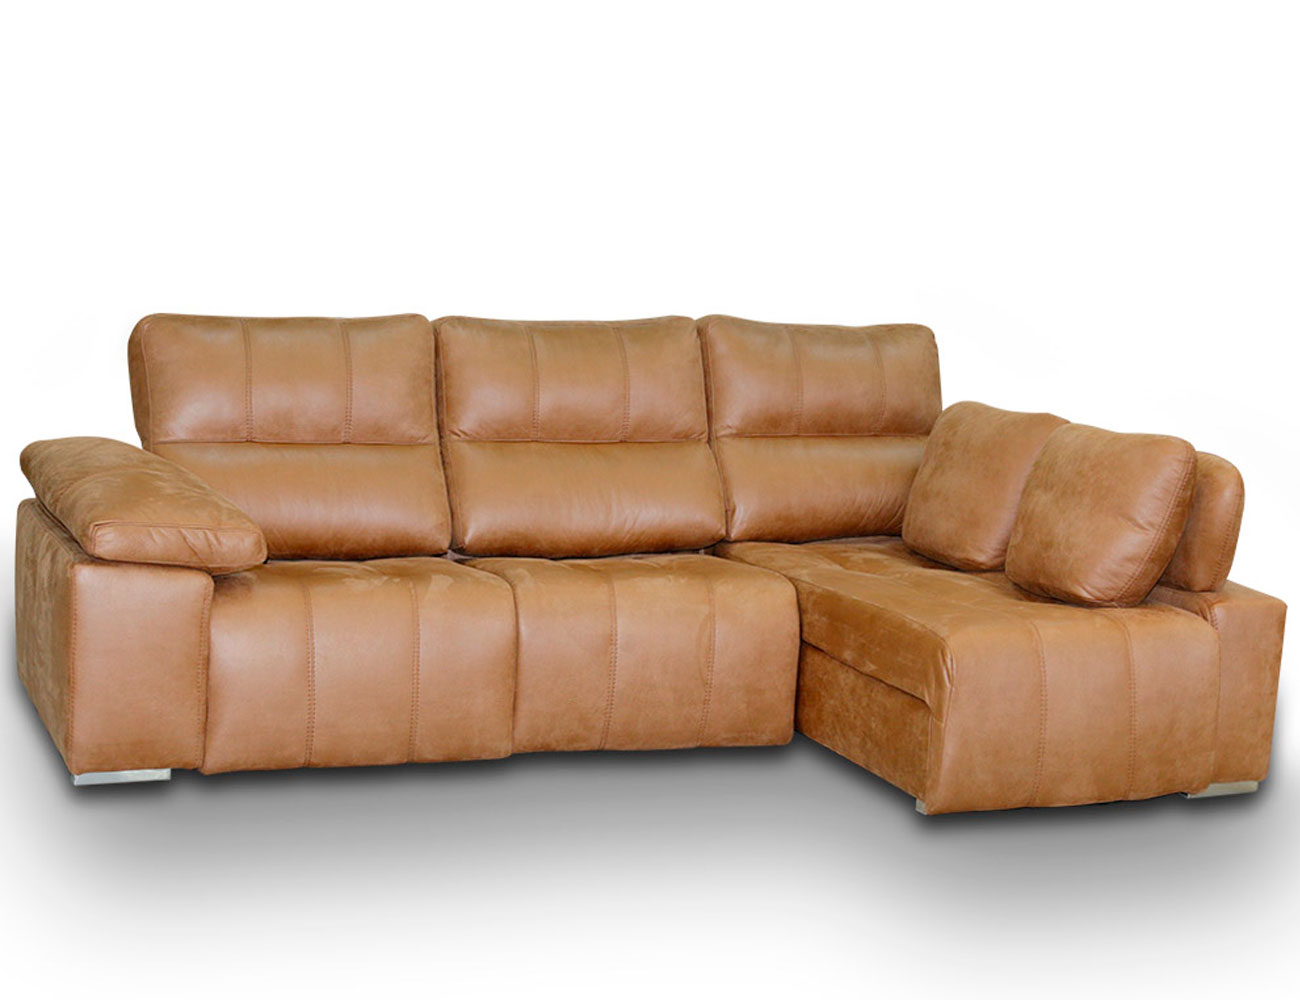 Sofa chaiselongue relax 2 motores anti manchas45